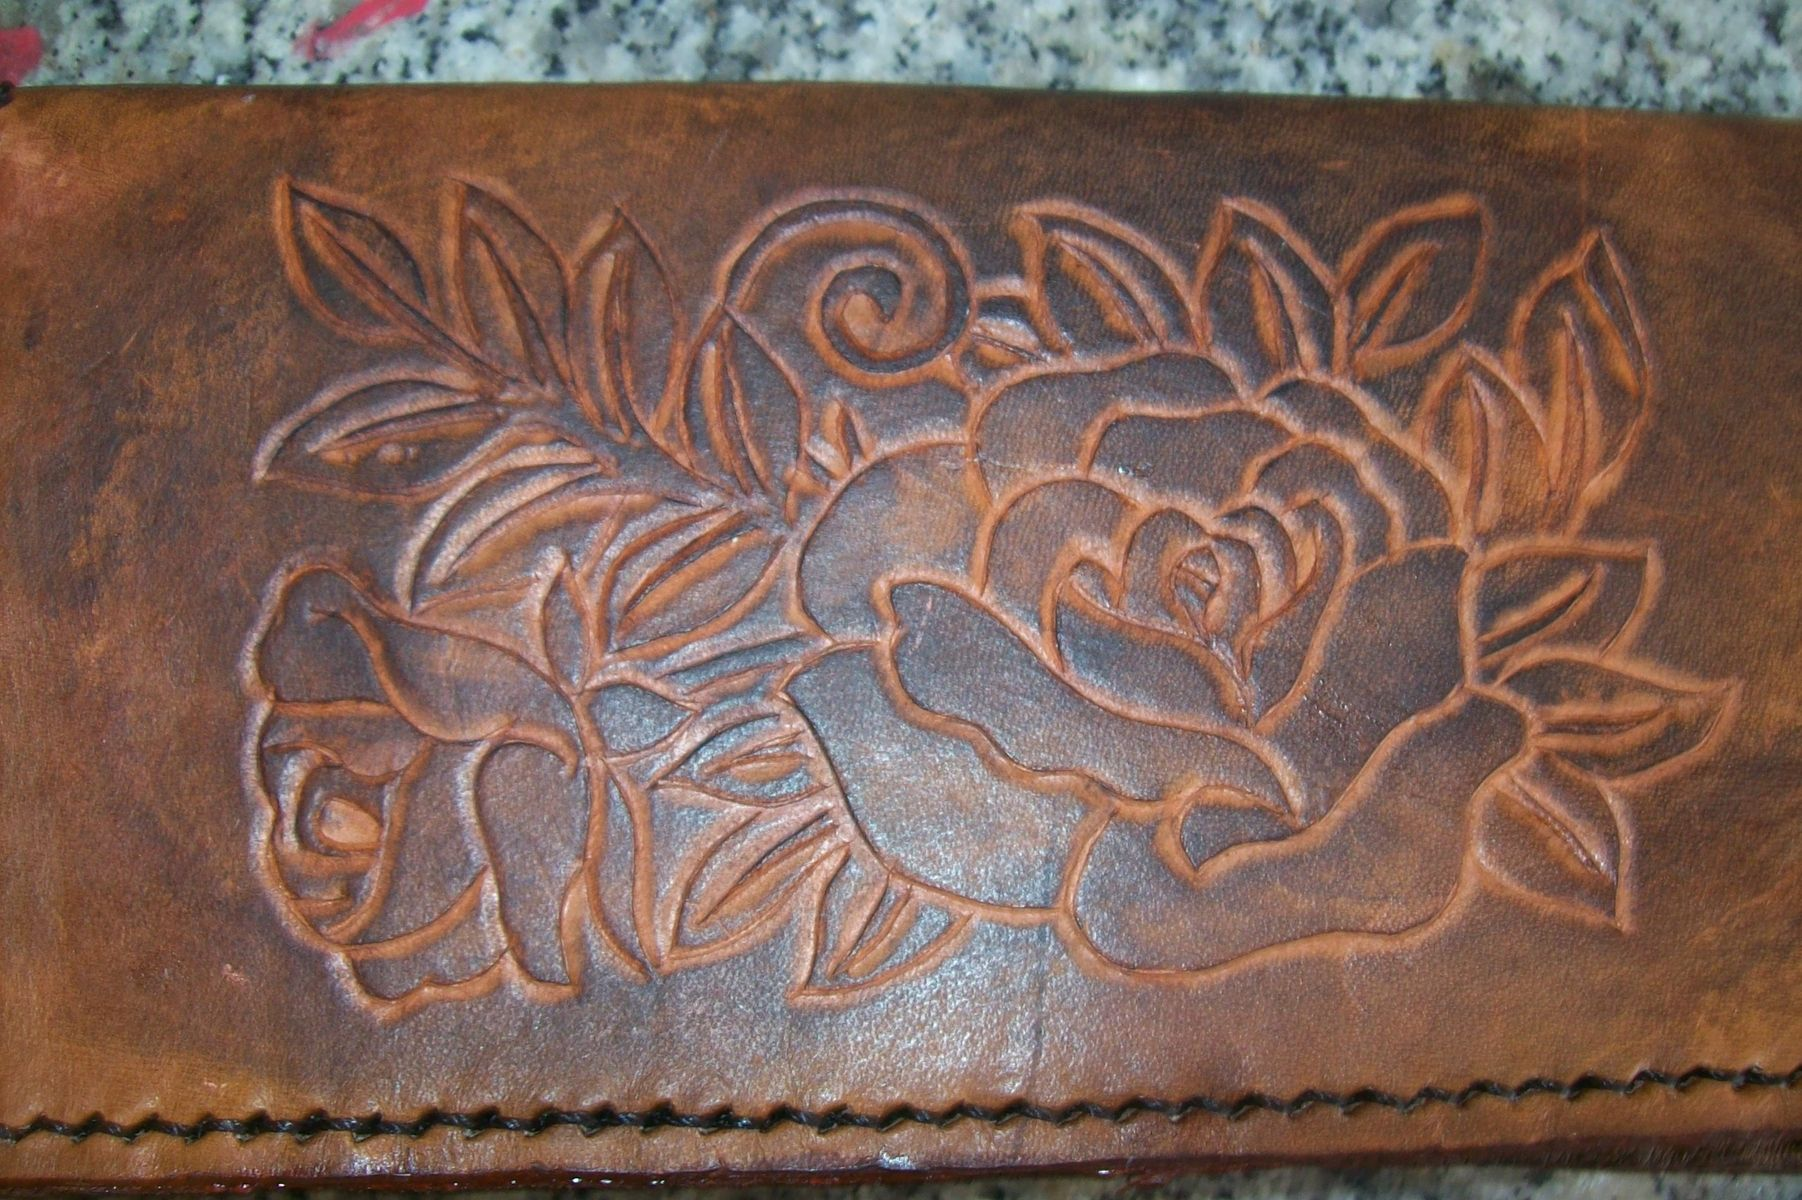 Buy A Hand Crafted Custom Leather Checkbook Cover With